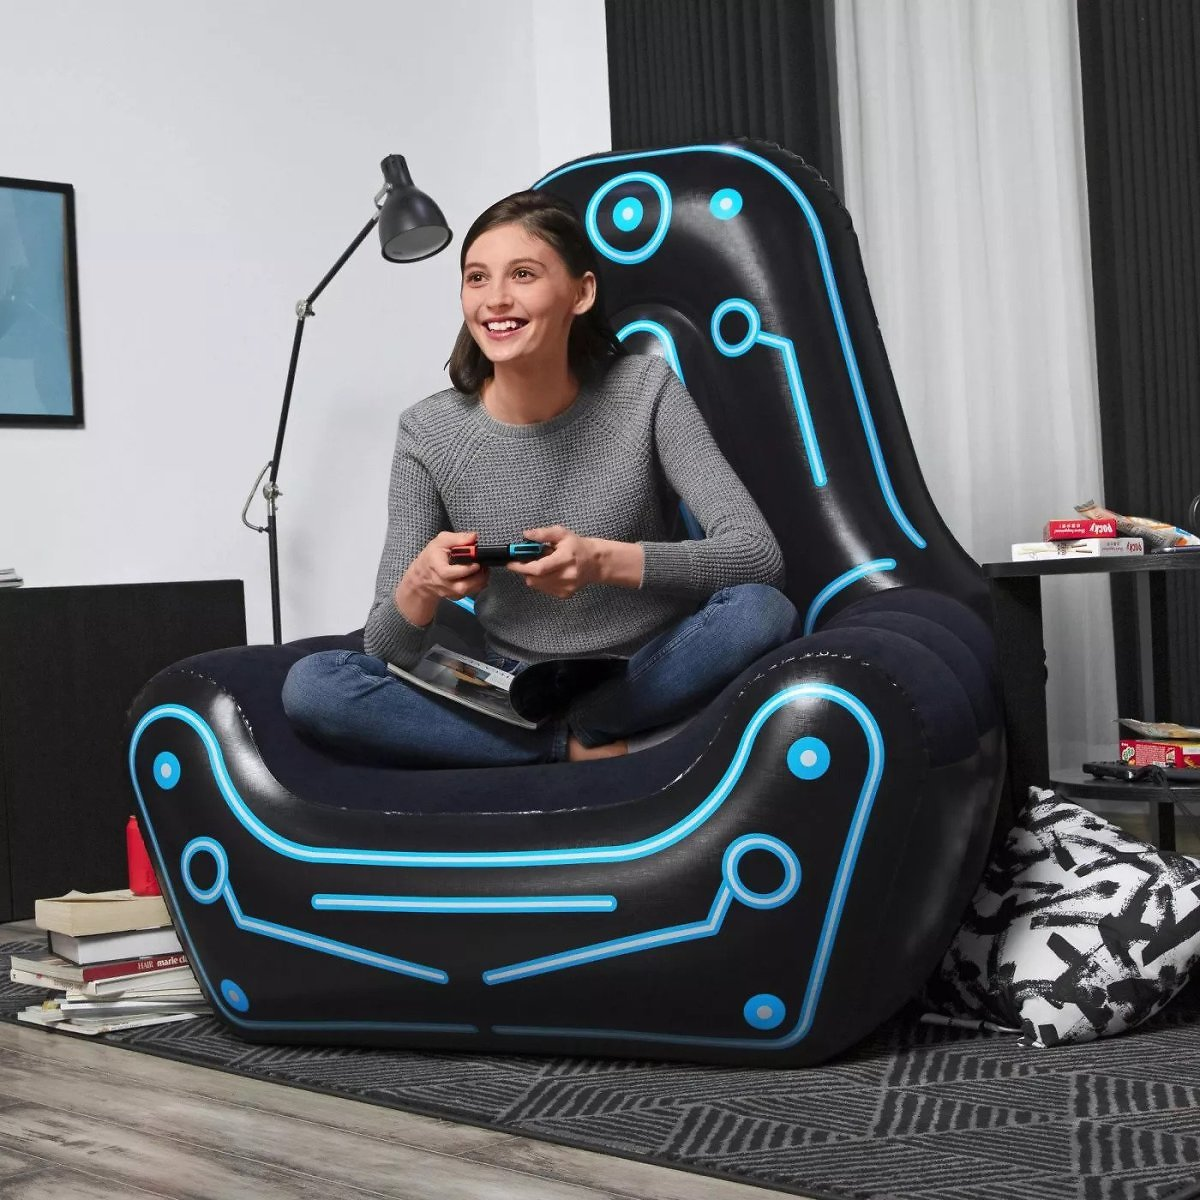 Bestway Mainframe Futuristic Style Inflatable Lounger Gaming Chair